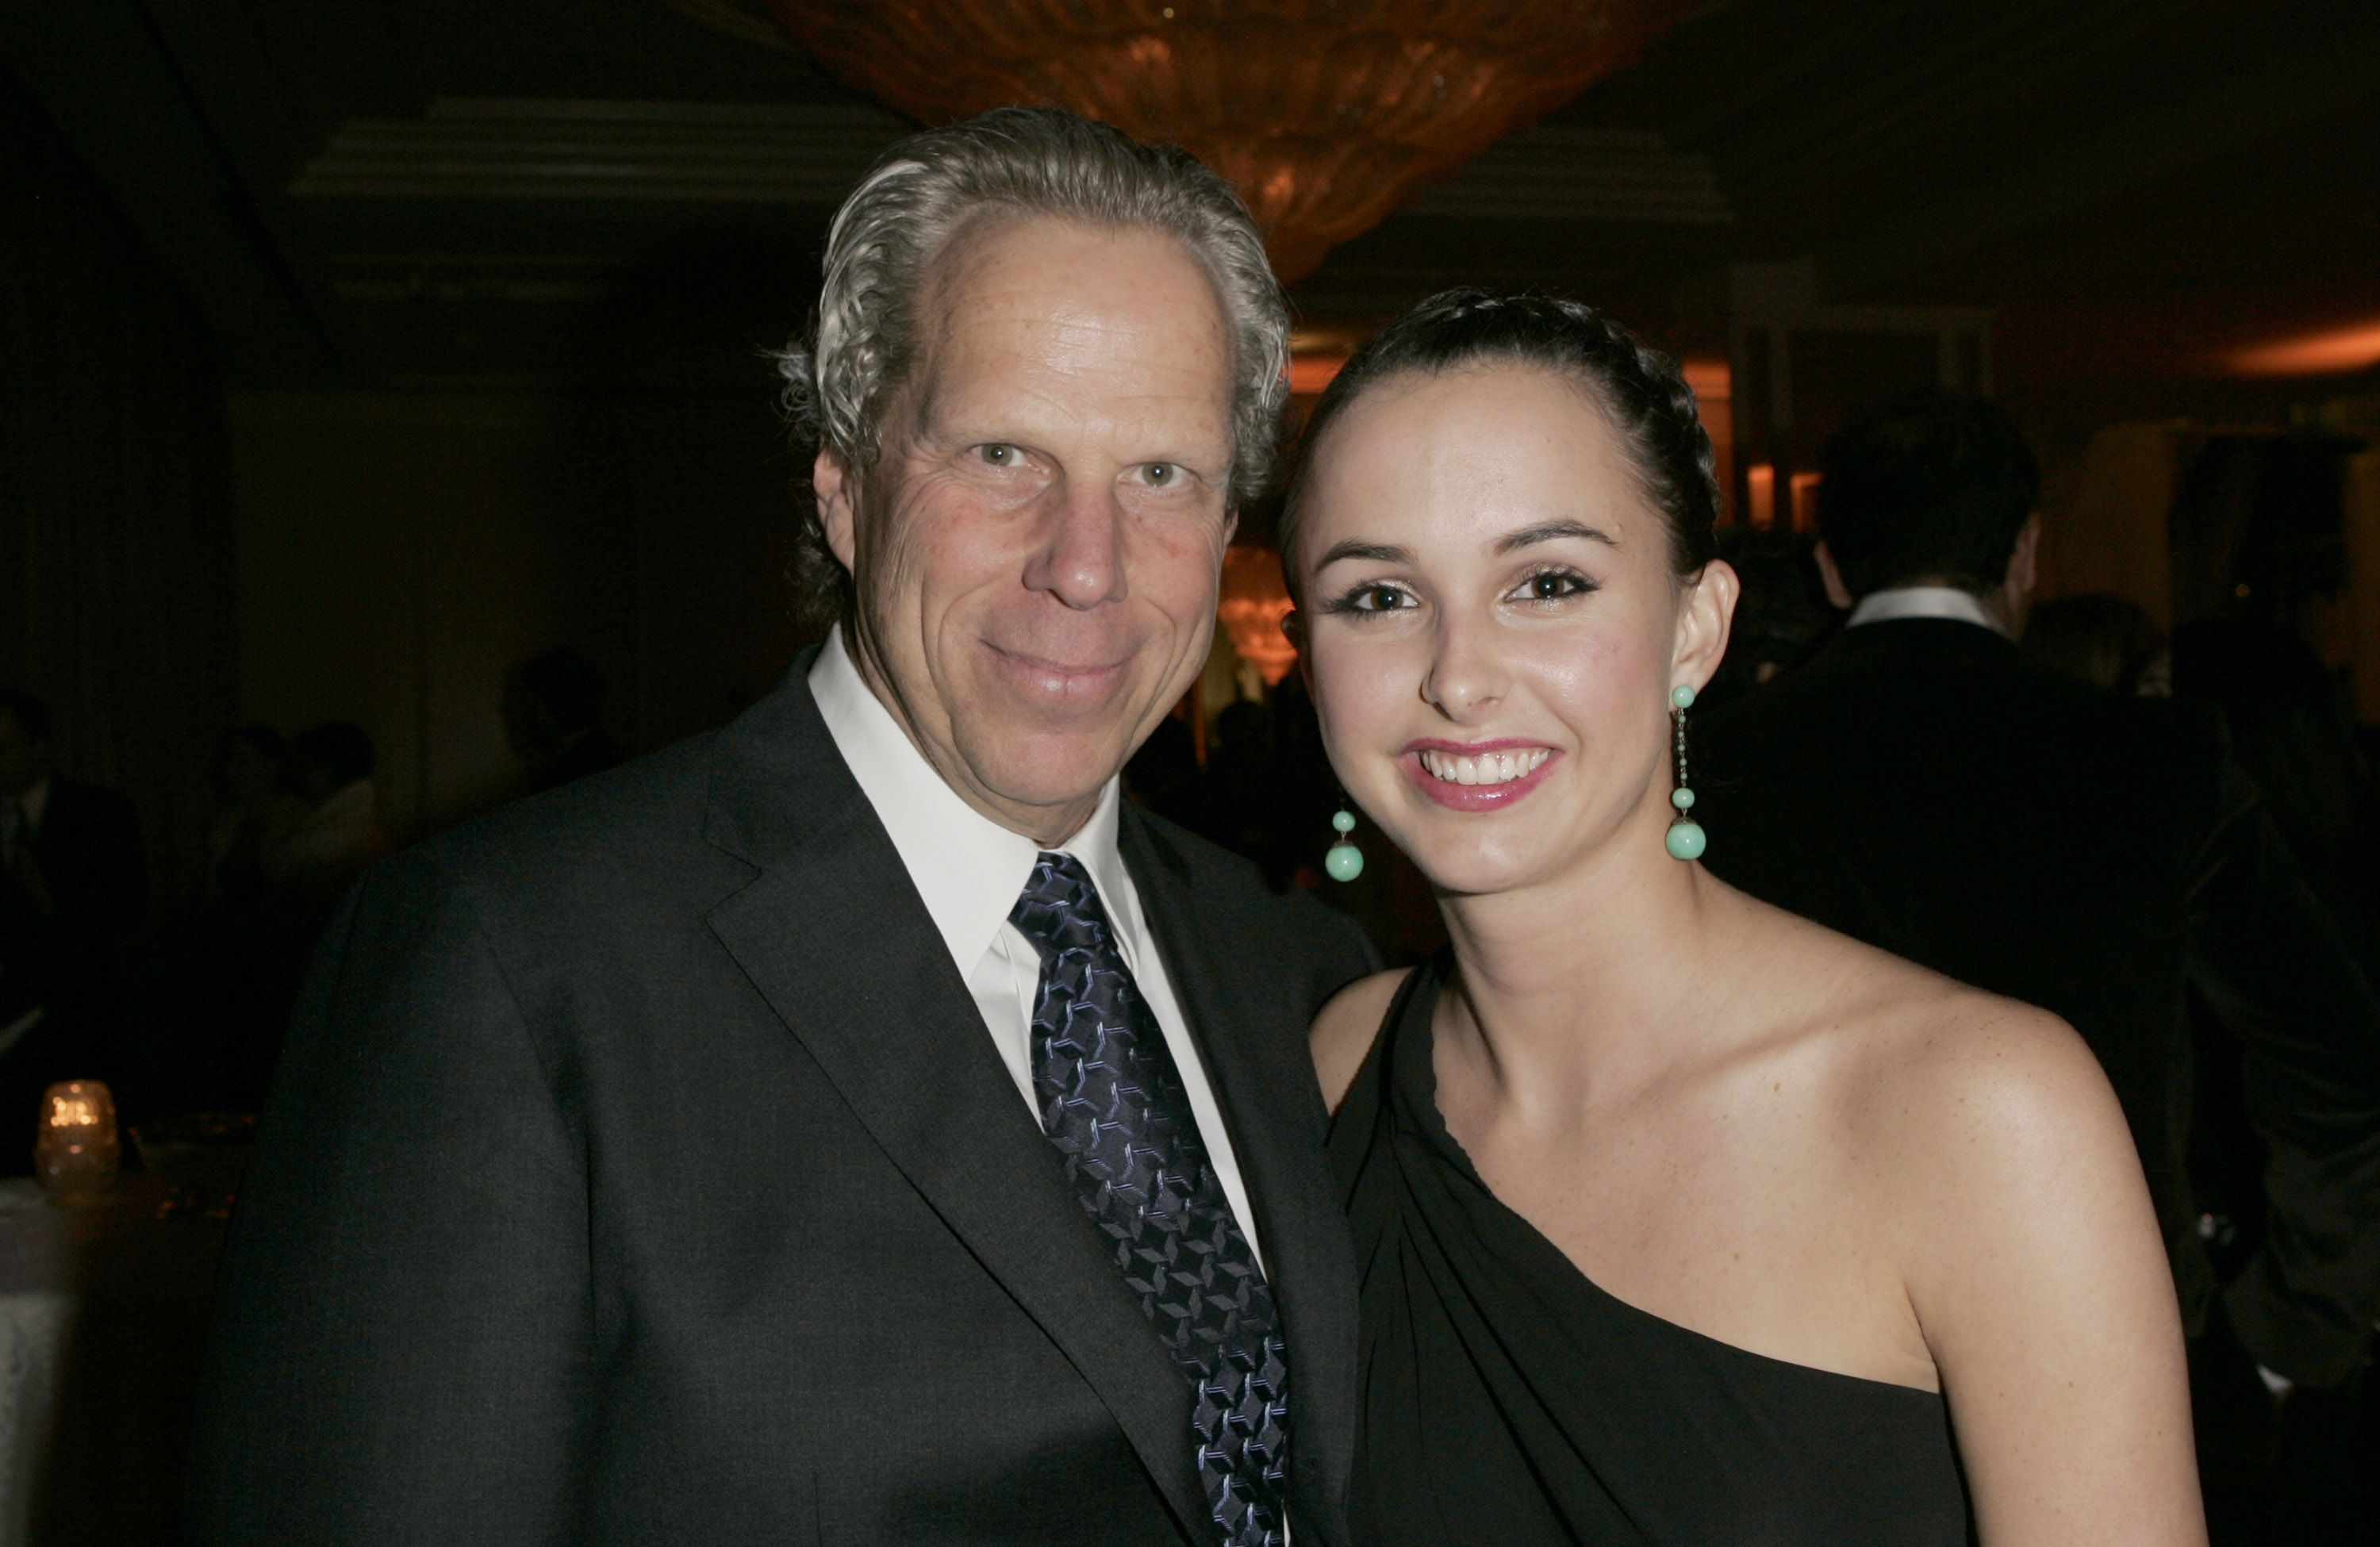 Steve Tisch and Hilary Tisch at Saks Fifth Avenue's Unforgettable Evening Benefitting EIF's Women's Cancer Research Fund in Beverly Hills | Source: Getty Images